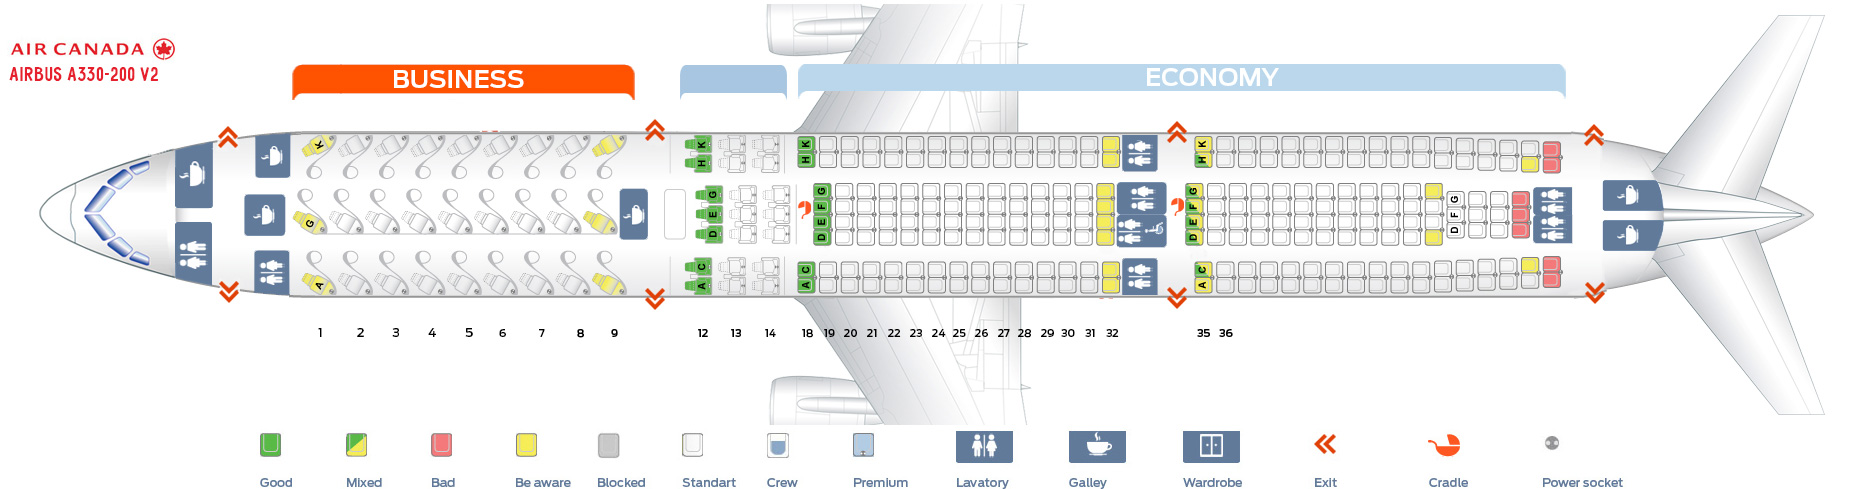 Air Canada 333 Seat Map Seat map Airbus A330 300 Air Canada. Best seats in plane